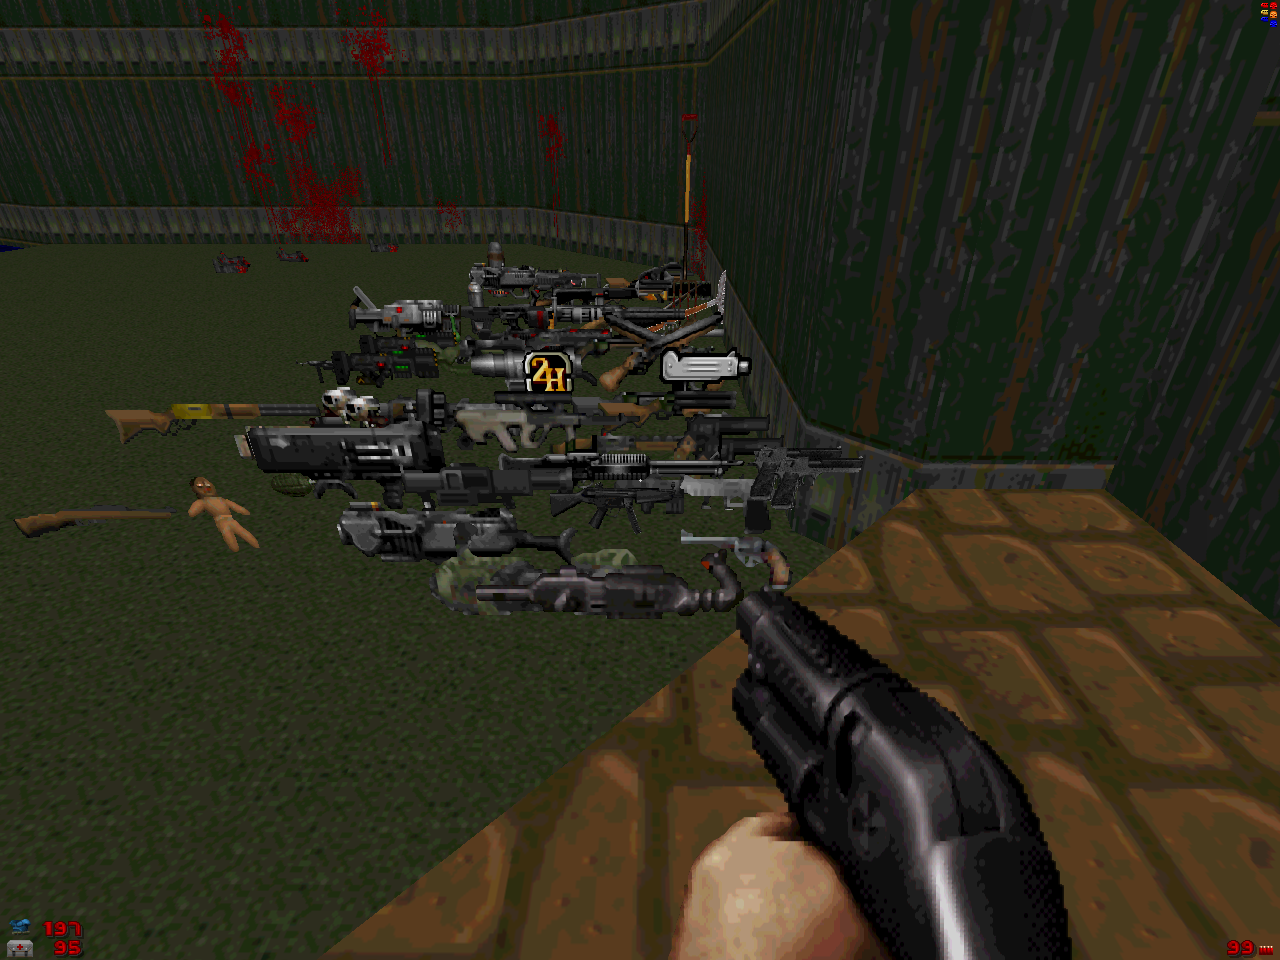 Brutal DooM v20 Weapons + addon - Mod DB